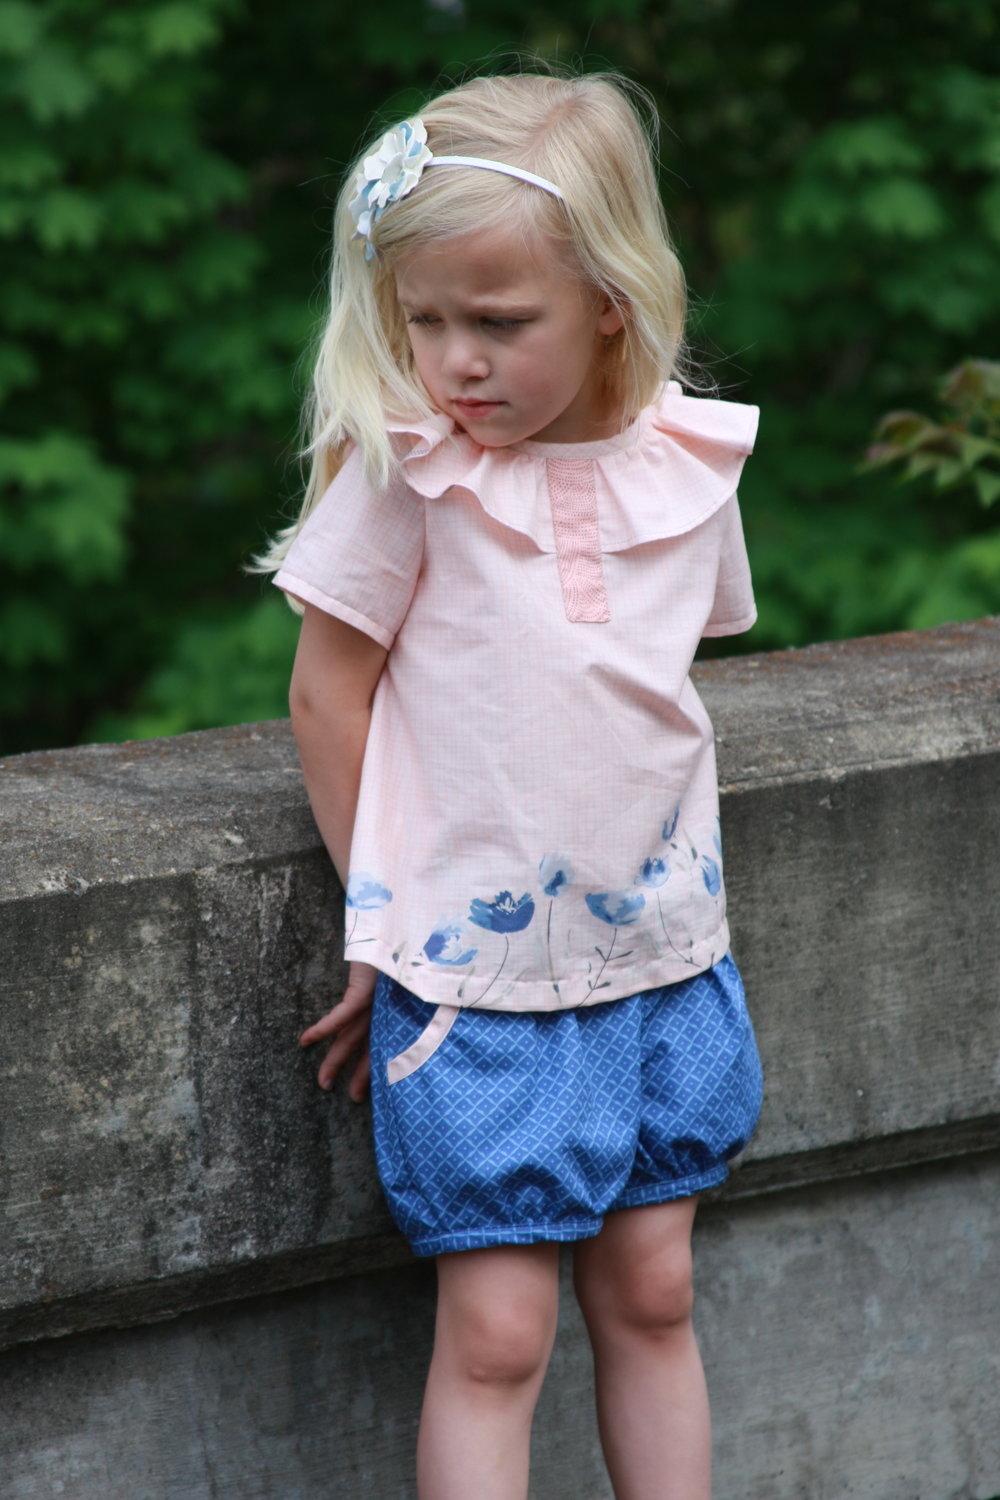 Shorts are  Berry Bubble Shorts by Mummykins and Me  (one of 10 patterns I picked for  summer sewing for kids ).